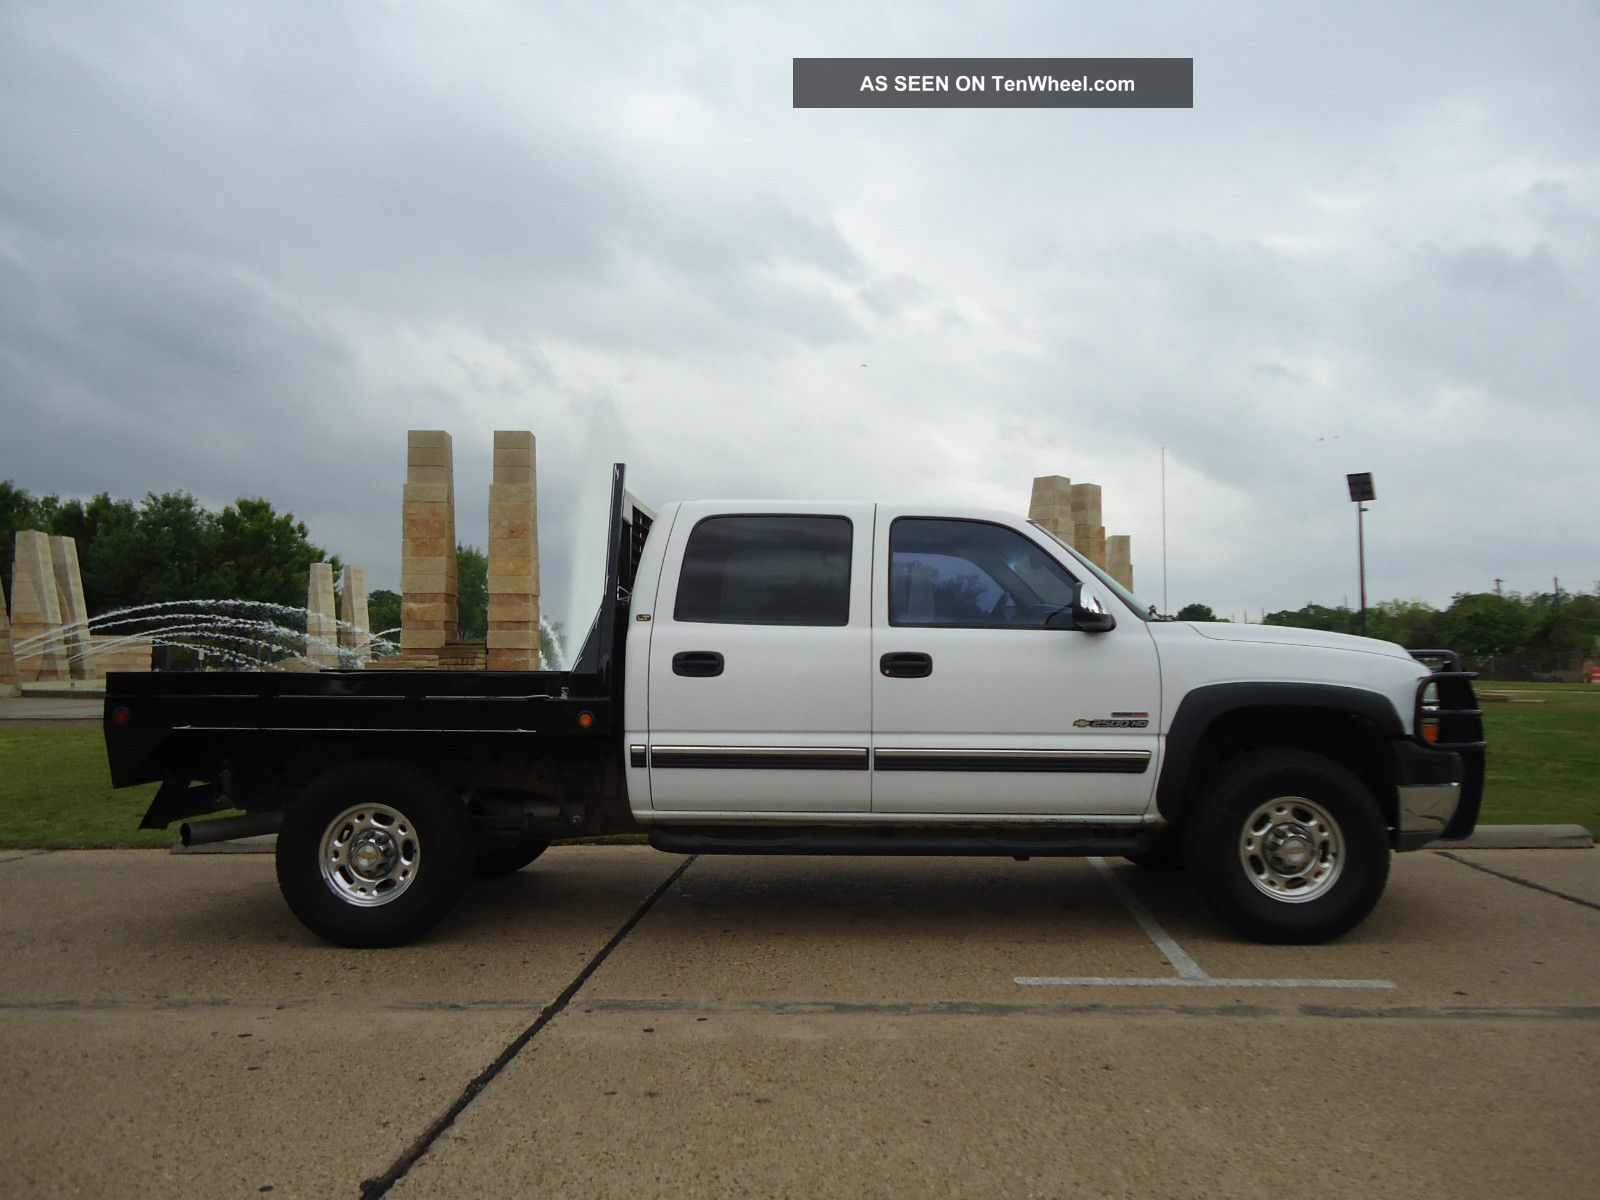 2002 Chevrolet Silverado 2500hd 4x4 Diesel Flatbed Air Ride Look Toyota Pickup Fuse Box Removal